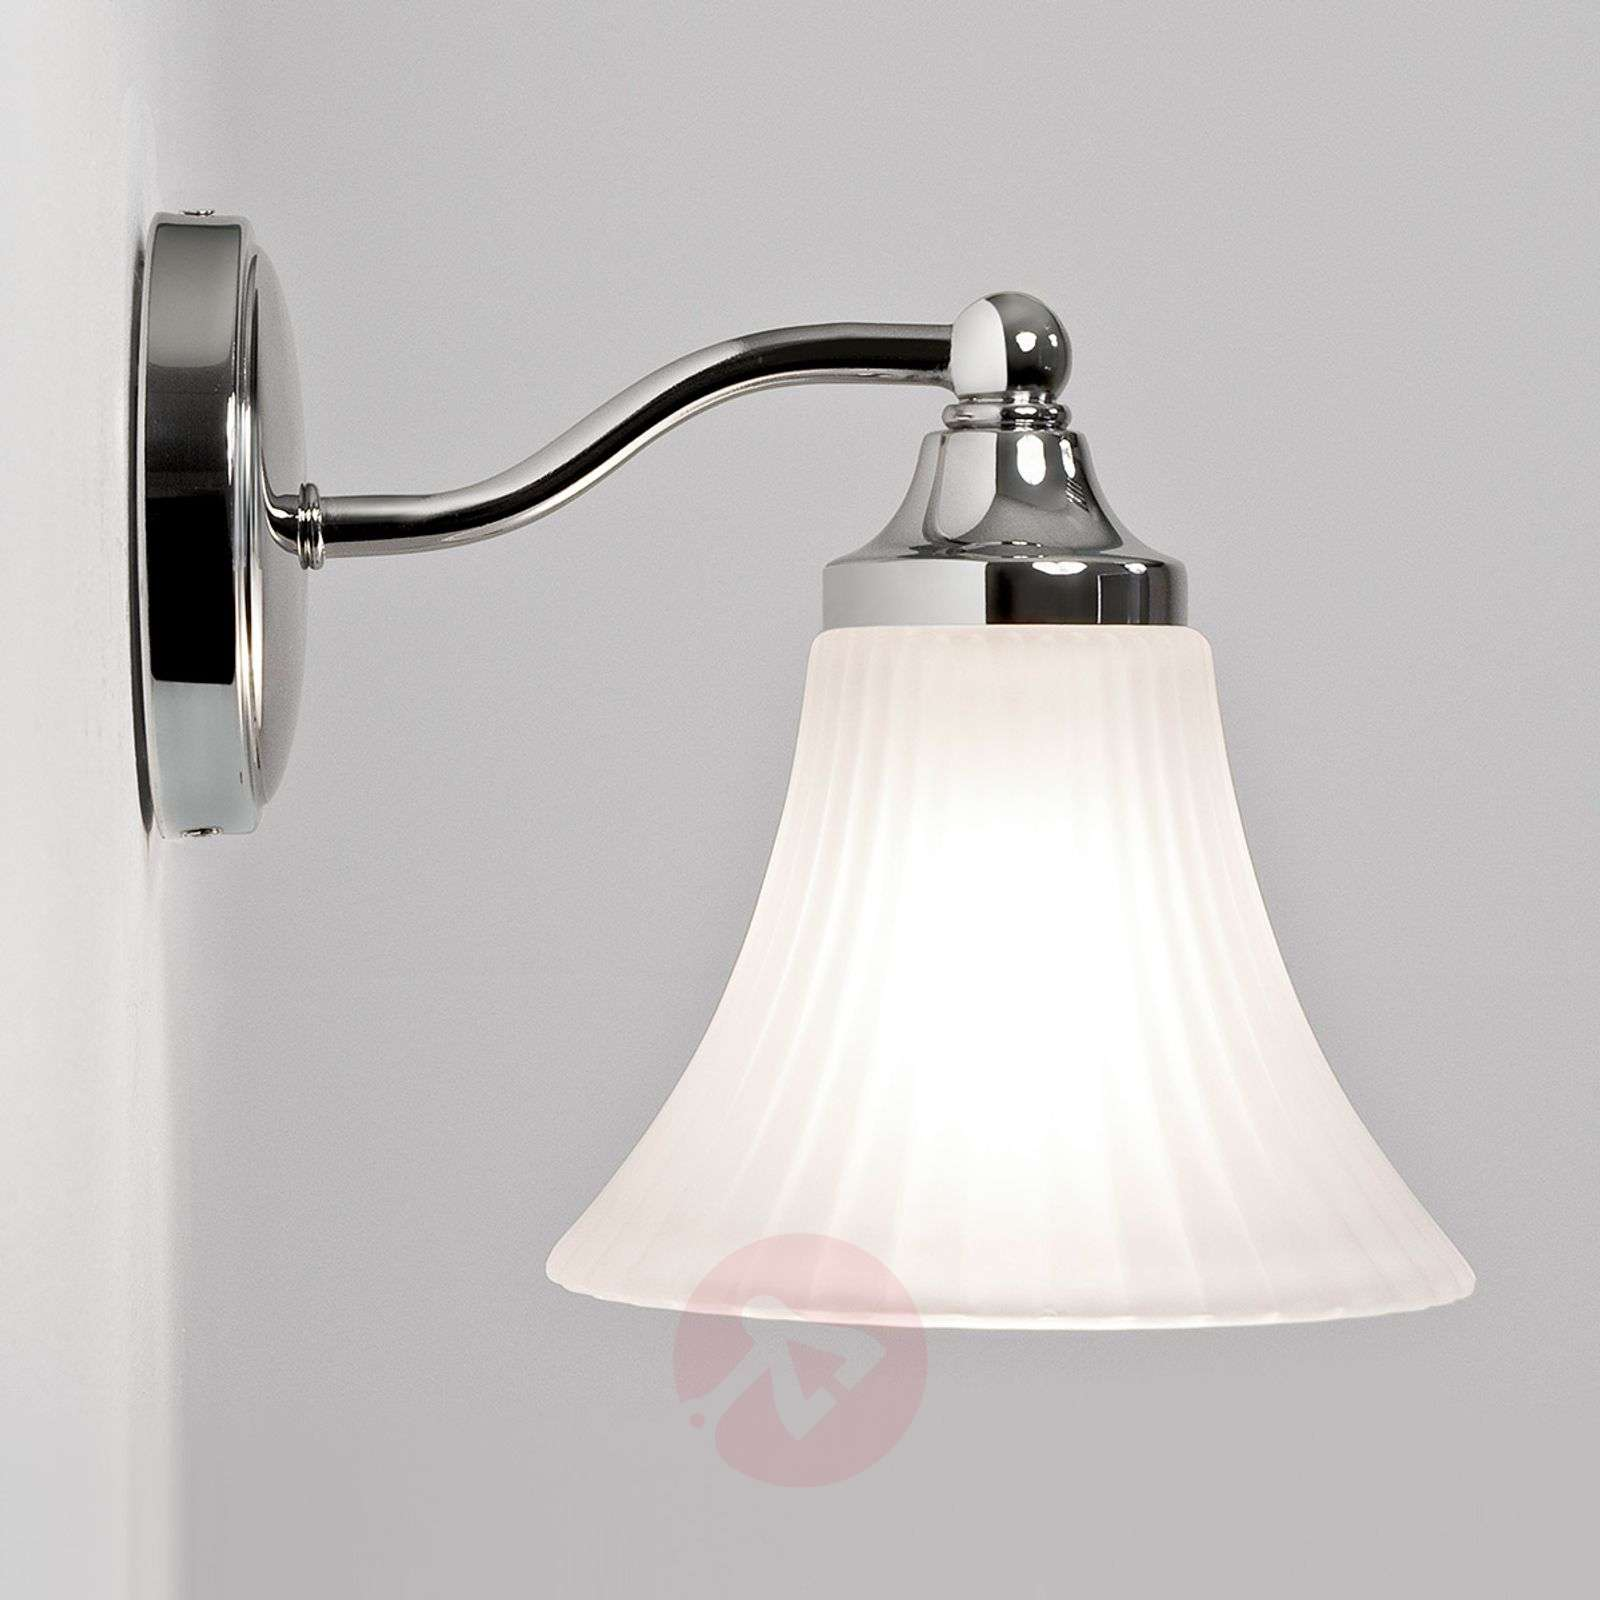 Nena Choice Bathroom Wall Light-1020293-02